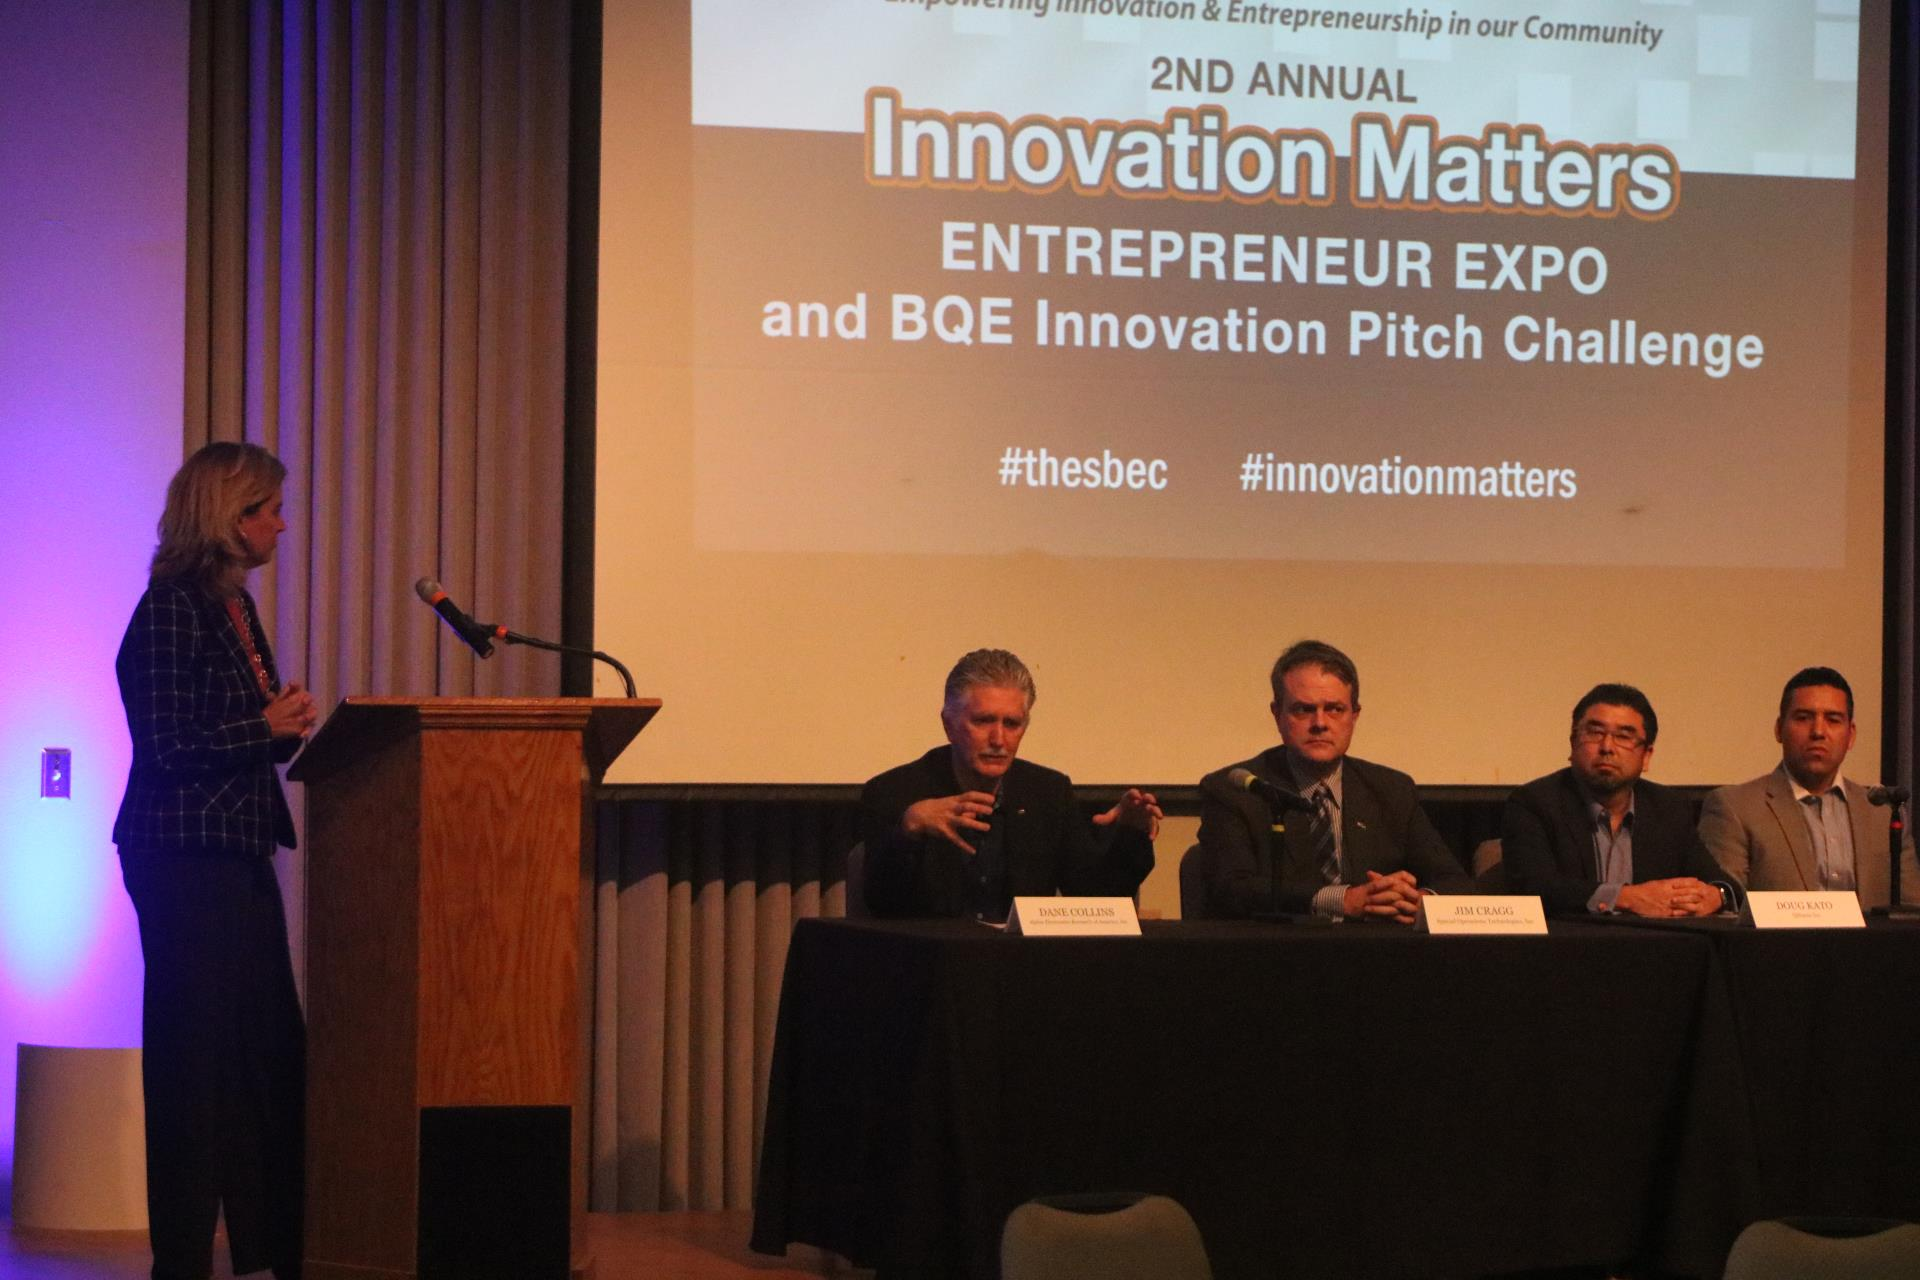 SBEC Innovation Matters